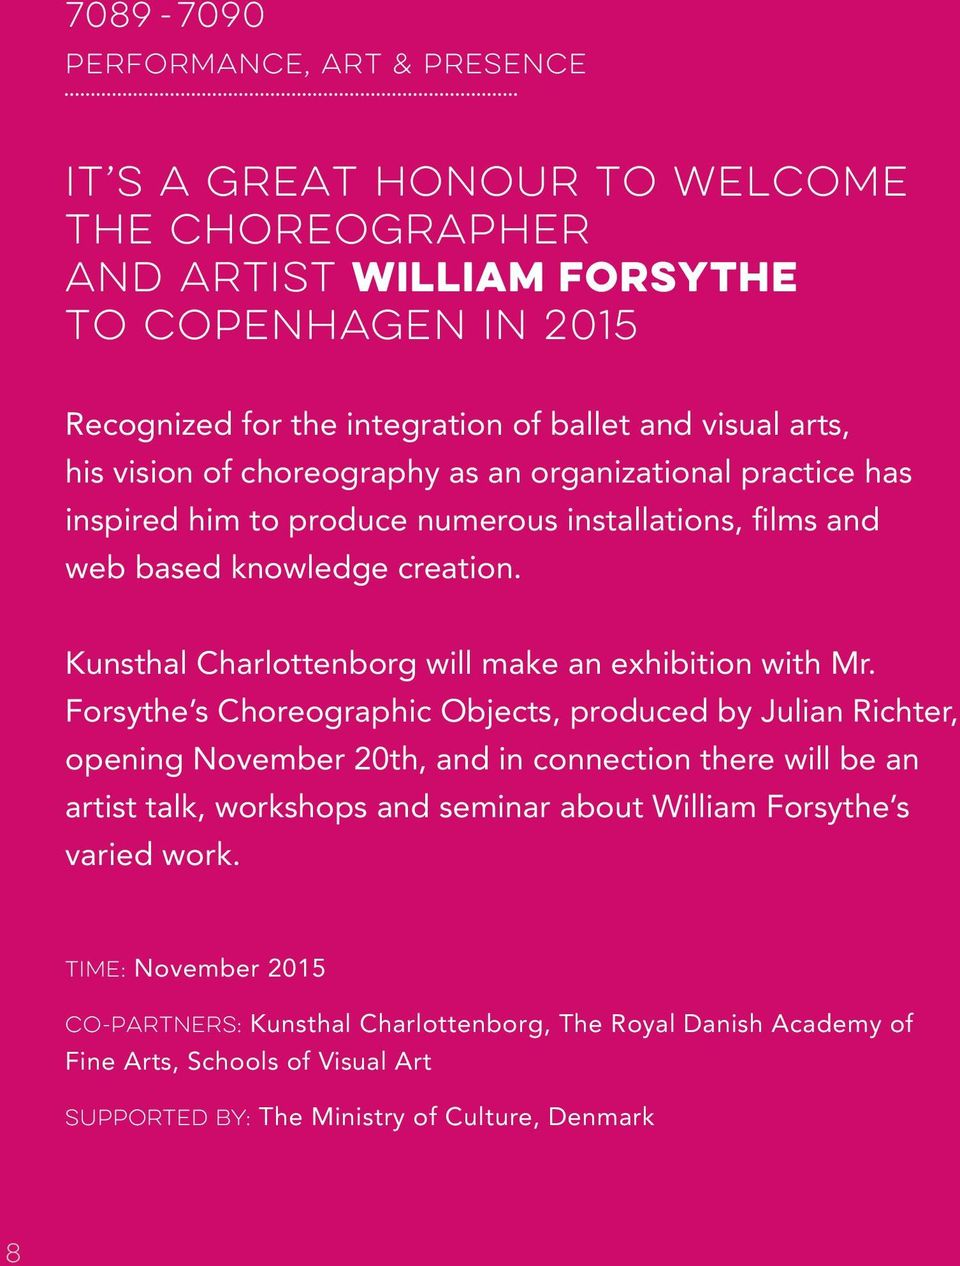 Kunsthal Charlottenborg will make an exhibition with Mr.